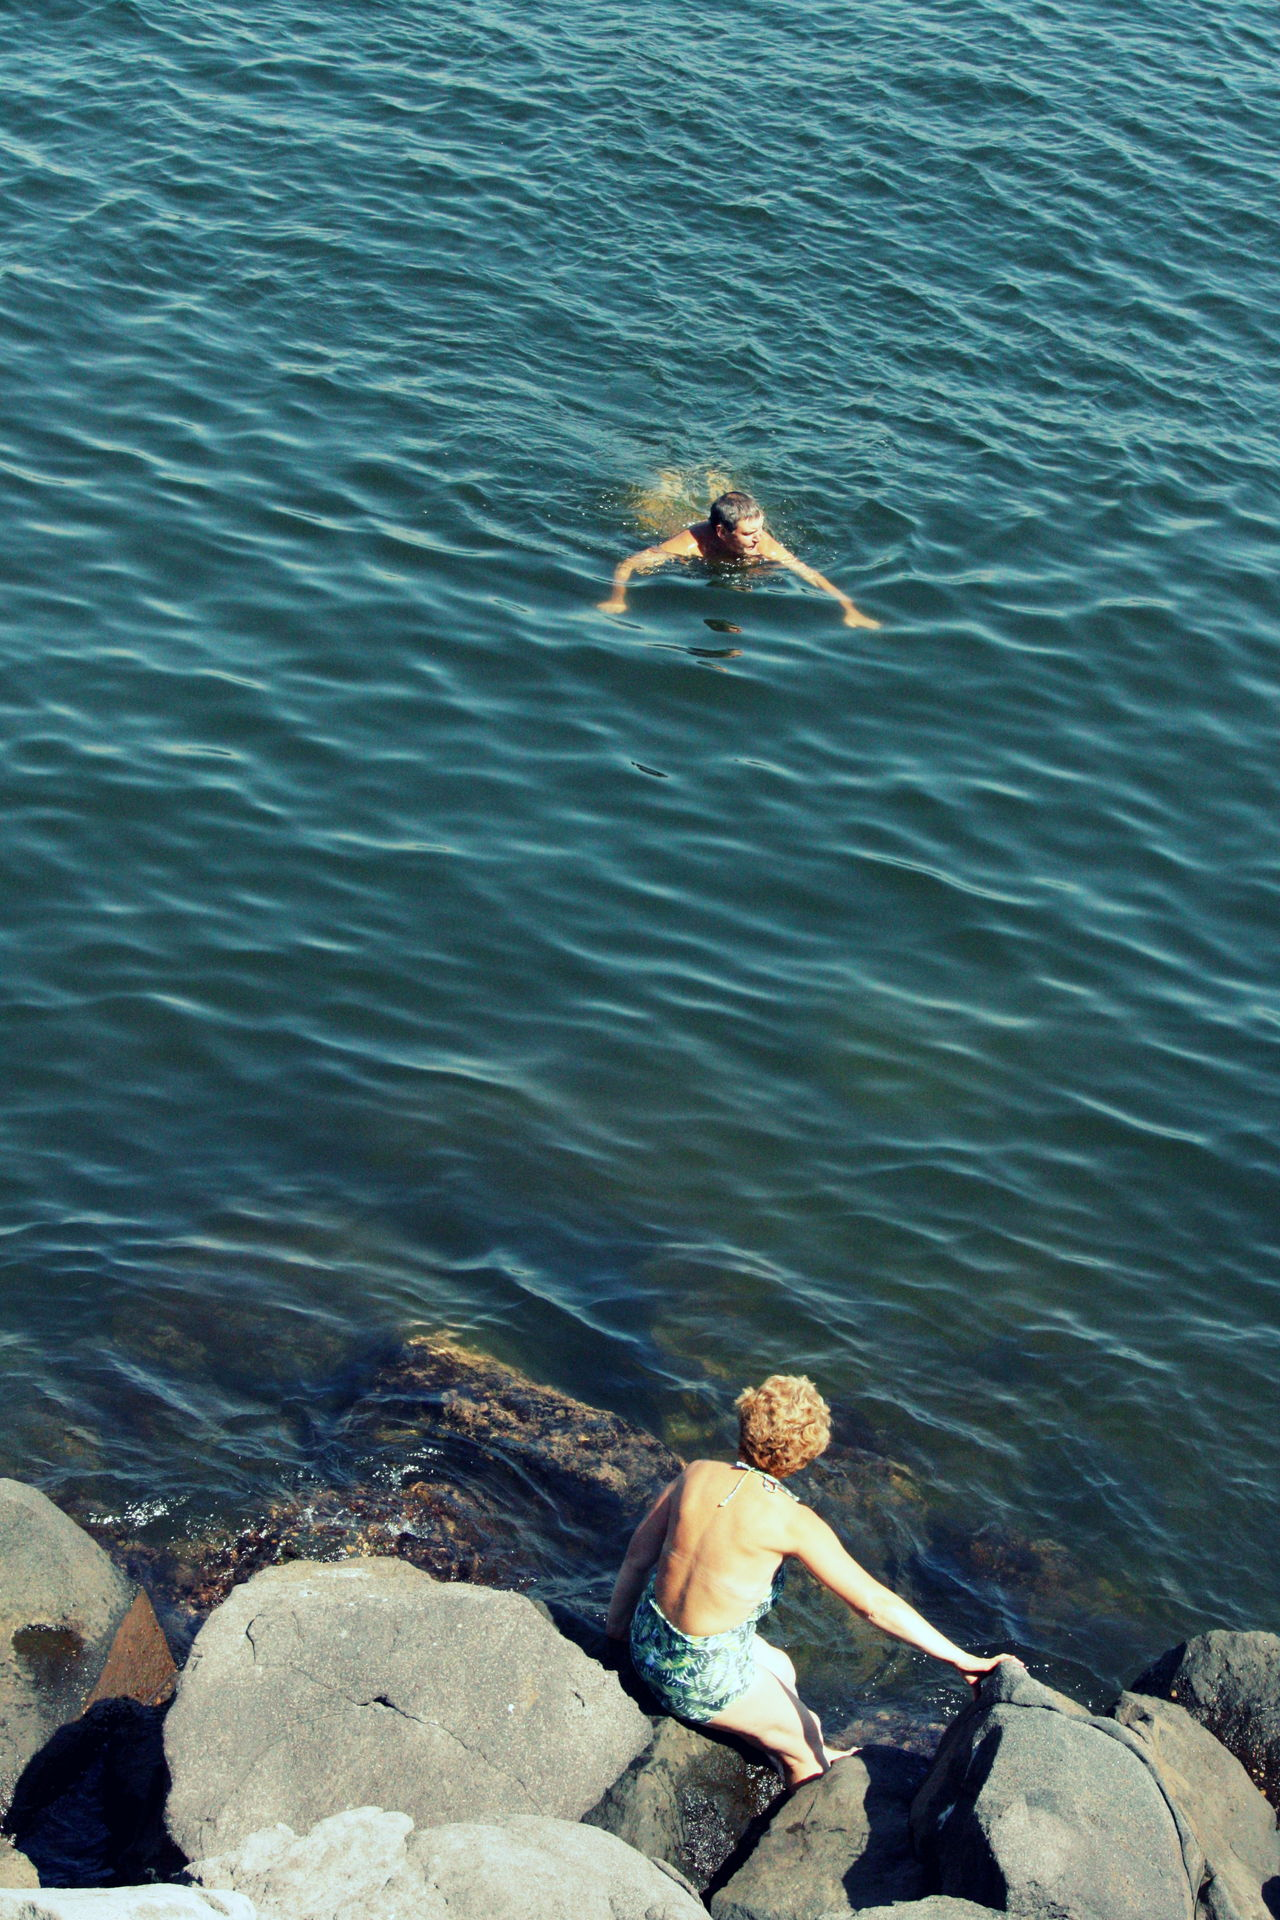 Couple Day Elderly Couple High Angle View Italy Leisure Activity Live For The Story Man Naples, Italy Napoli Nature Nature Ocean Outdoors Real People Romantic Sea Streetphotography Summer Swimming Telling Stories Differently Water Woman